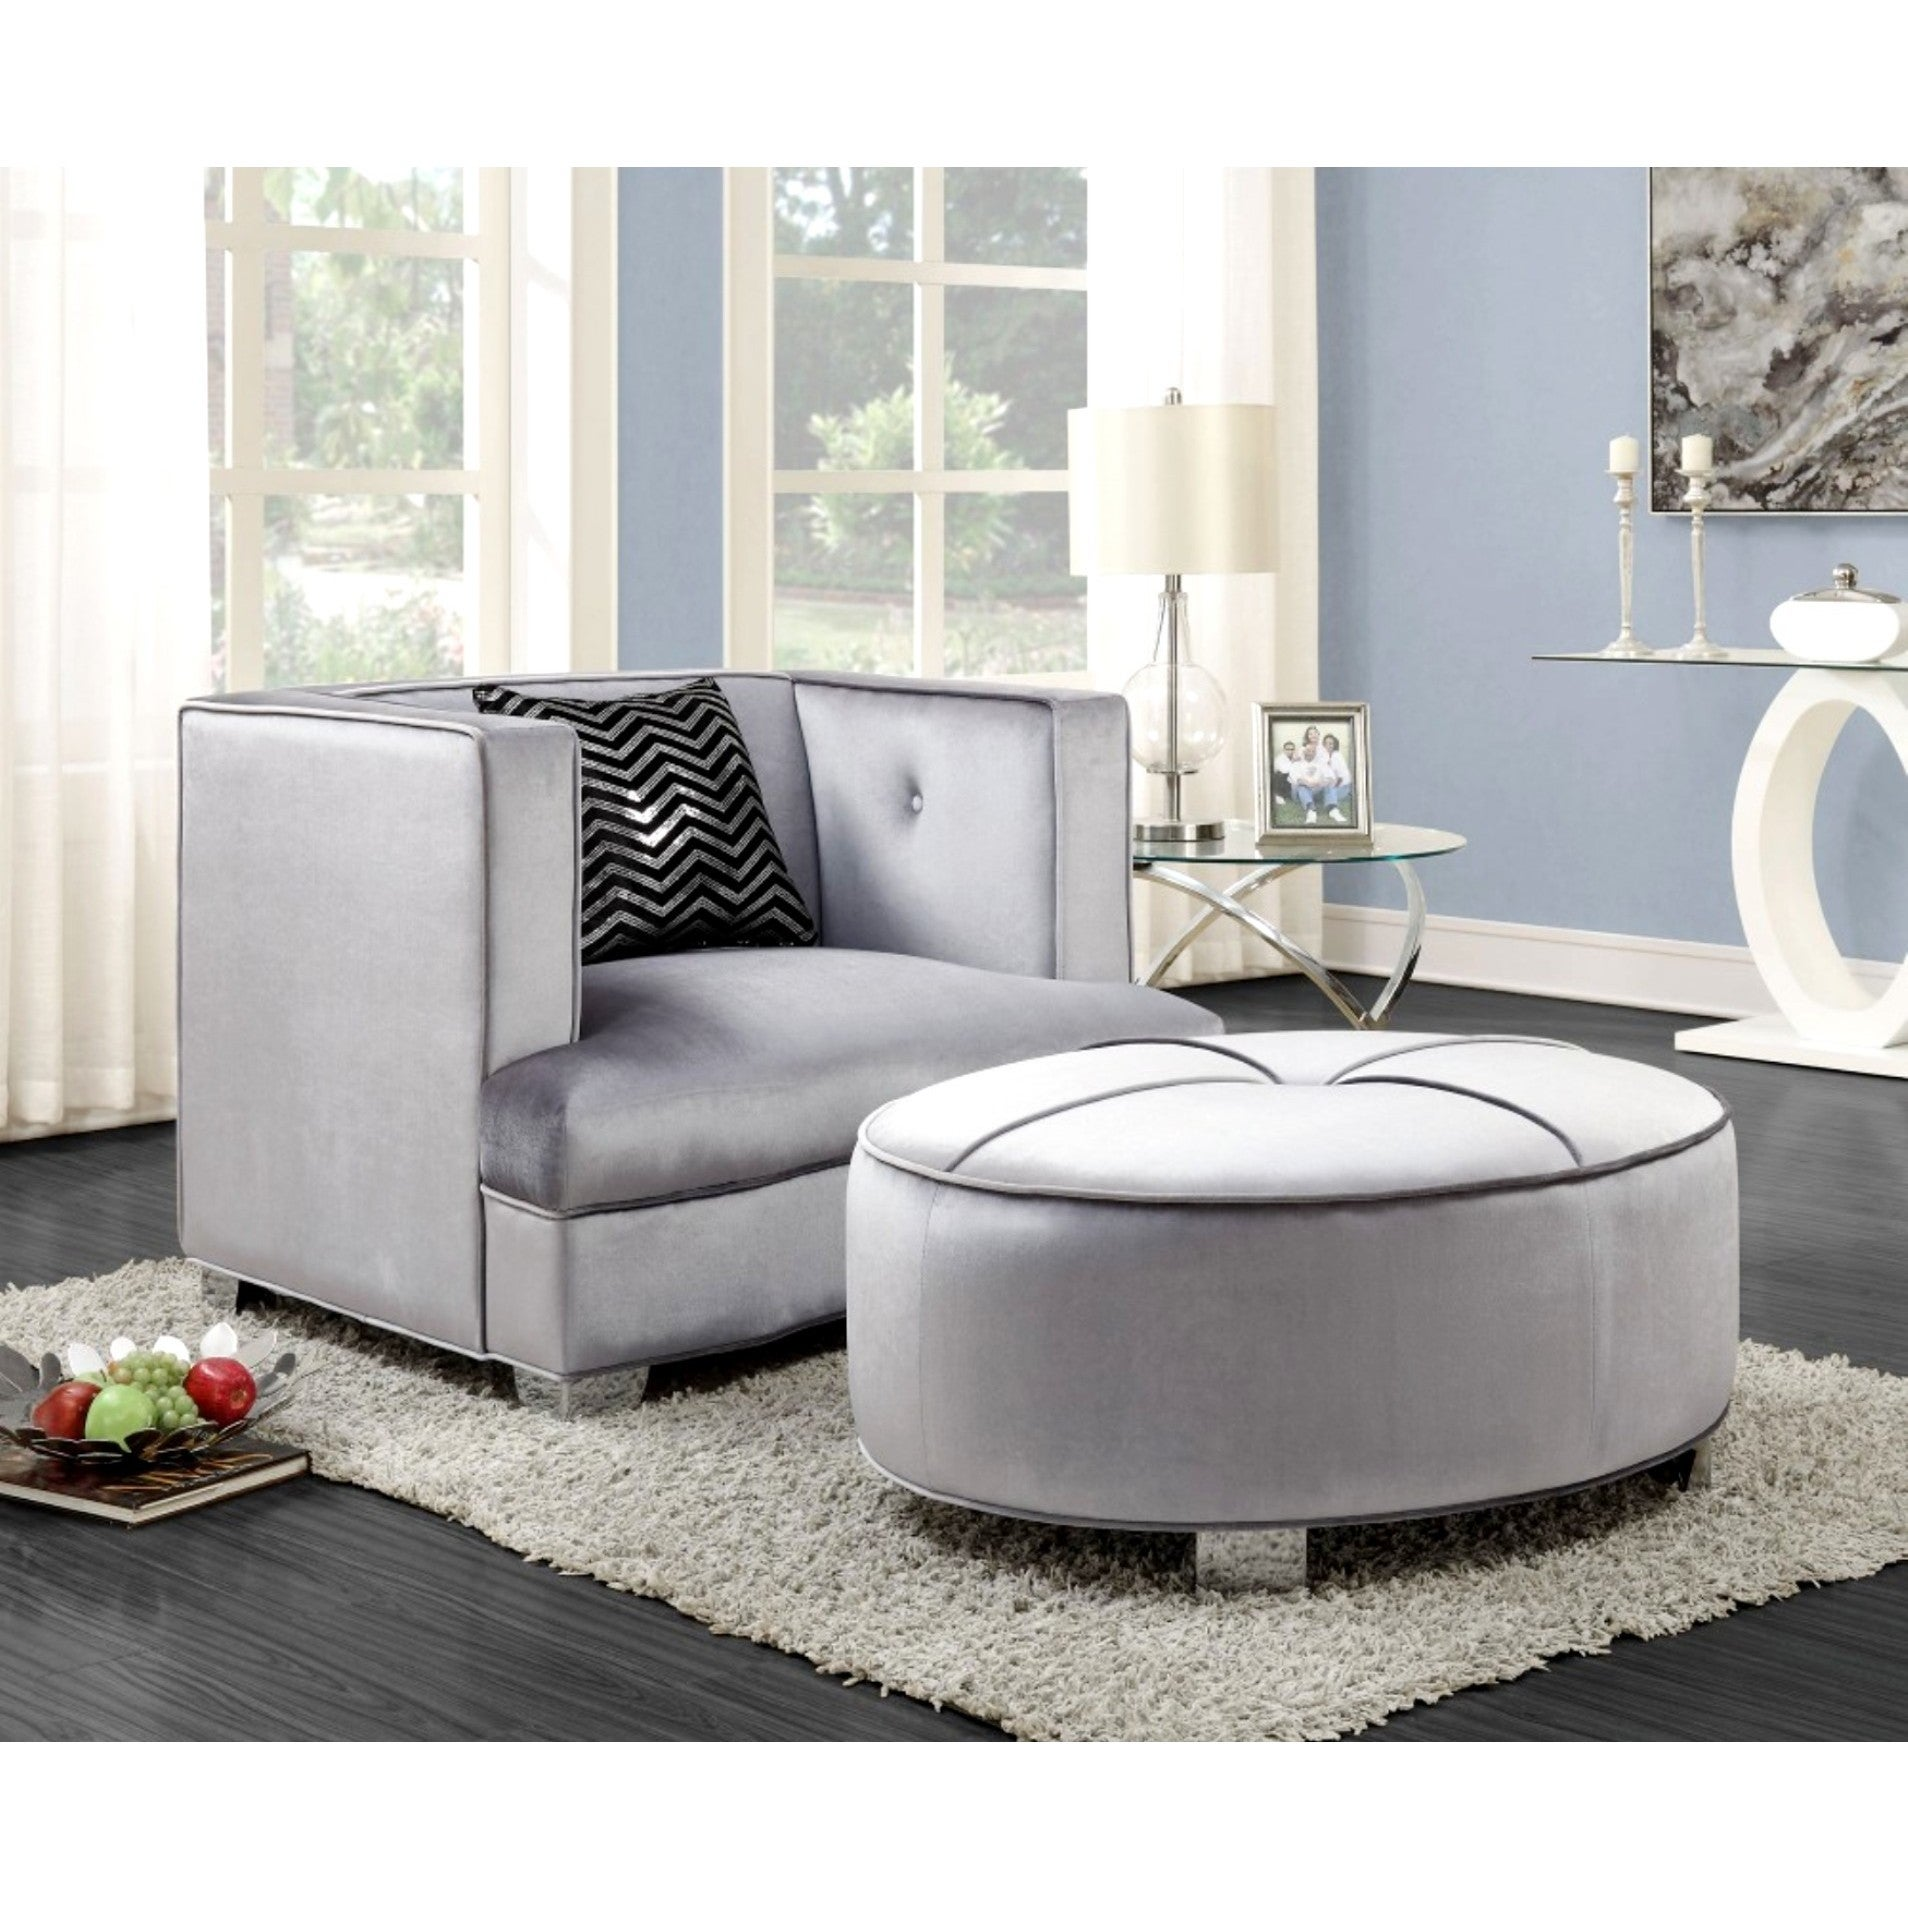 Modern Design Traditional Influenced Silver Velvet Living Room Sofa  Collection   Free Shipping Today   Overstock.com   22652360